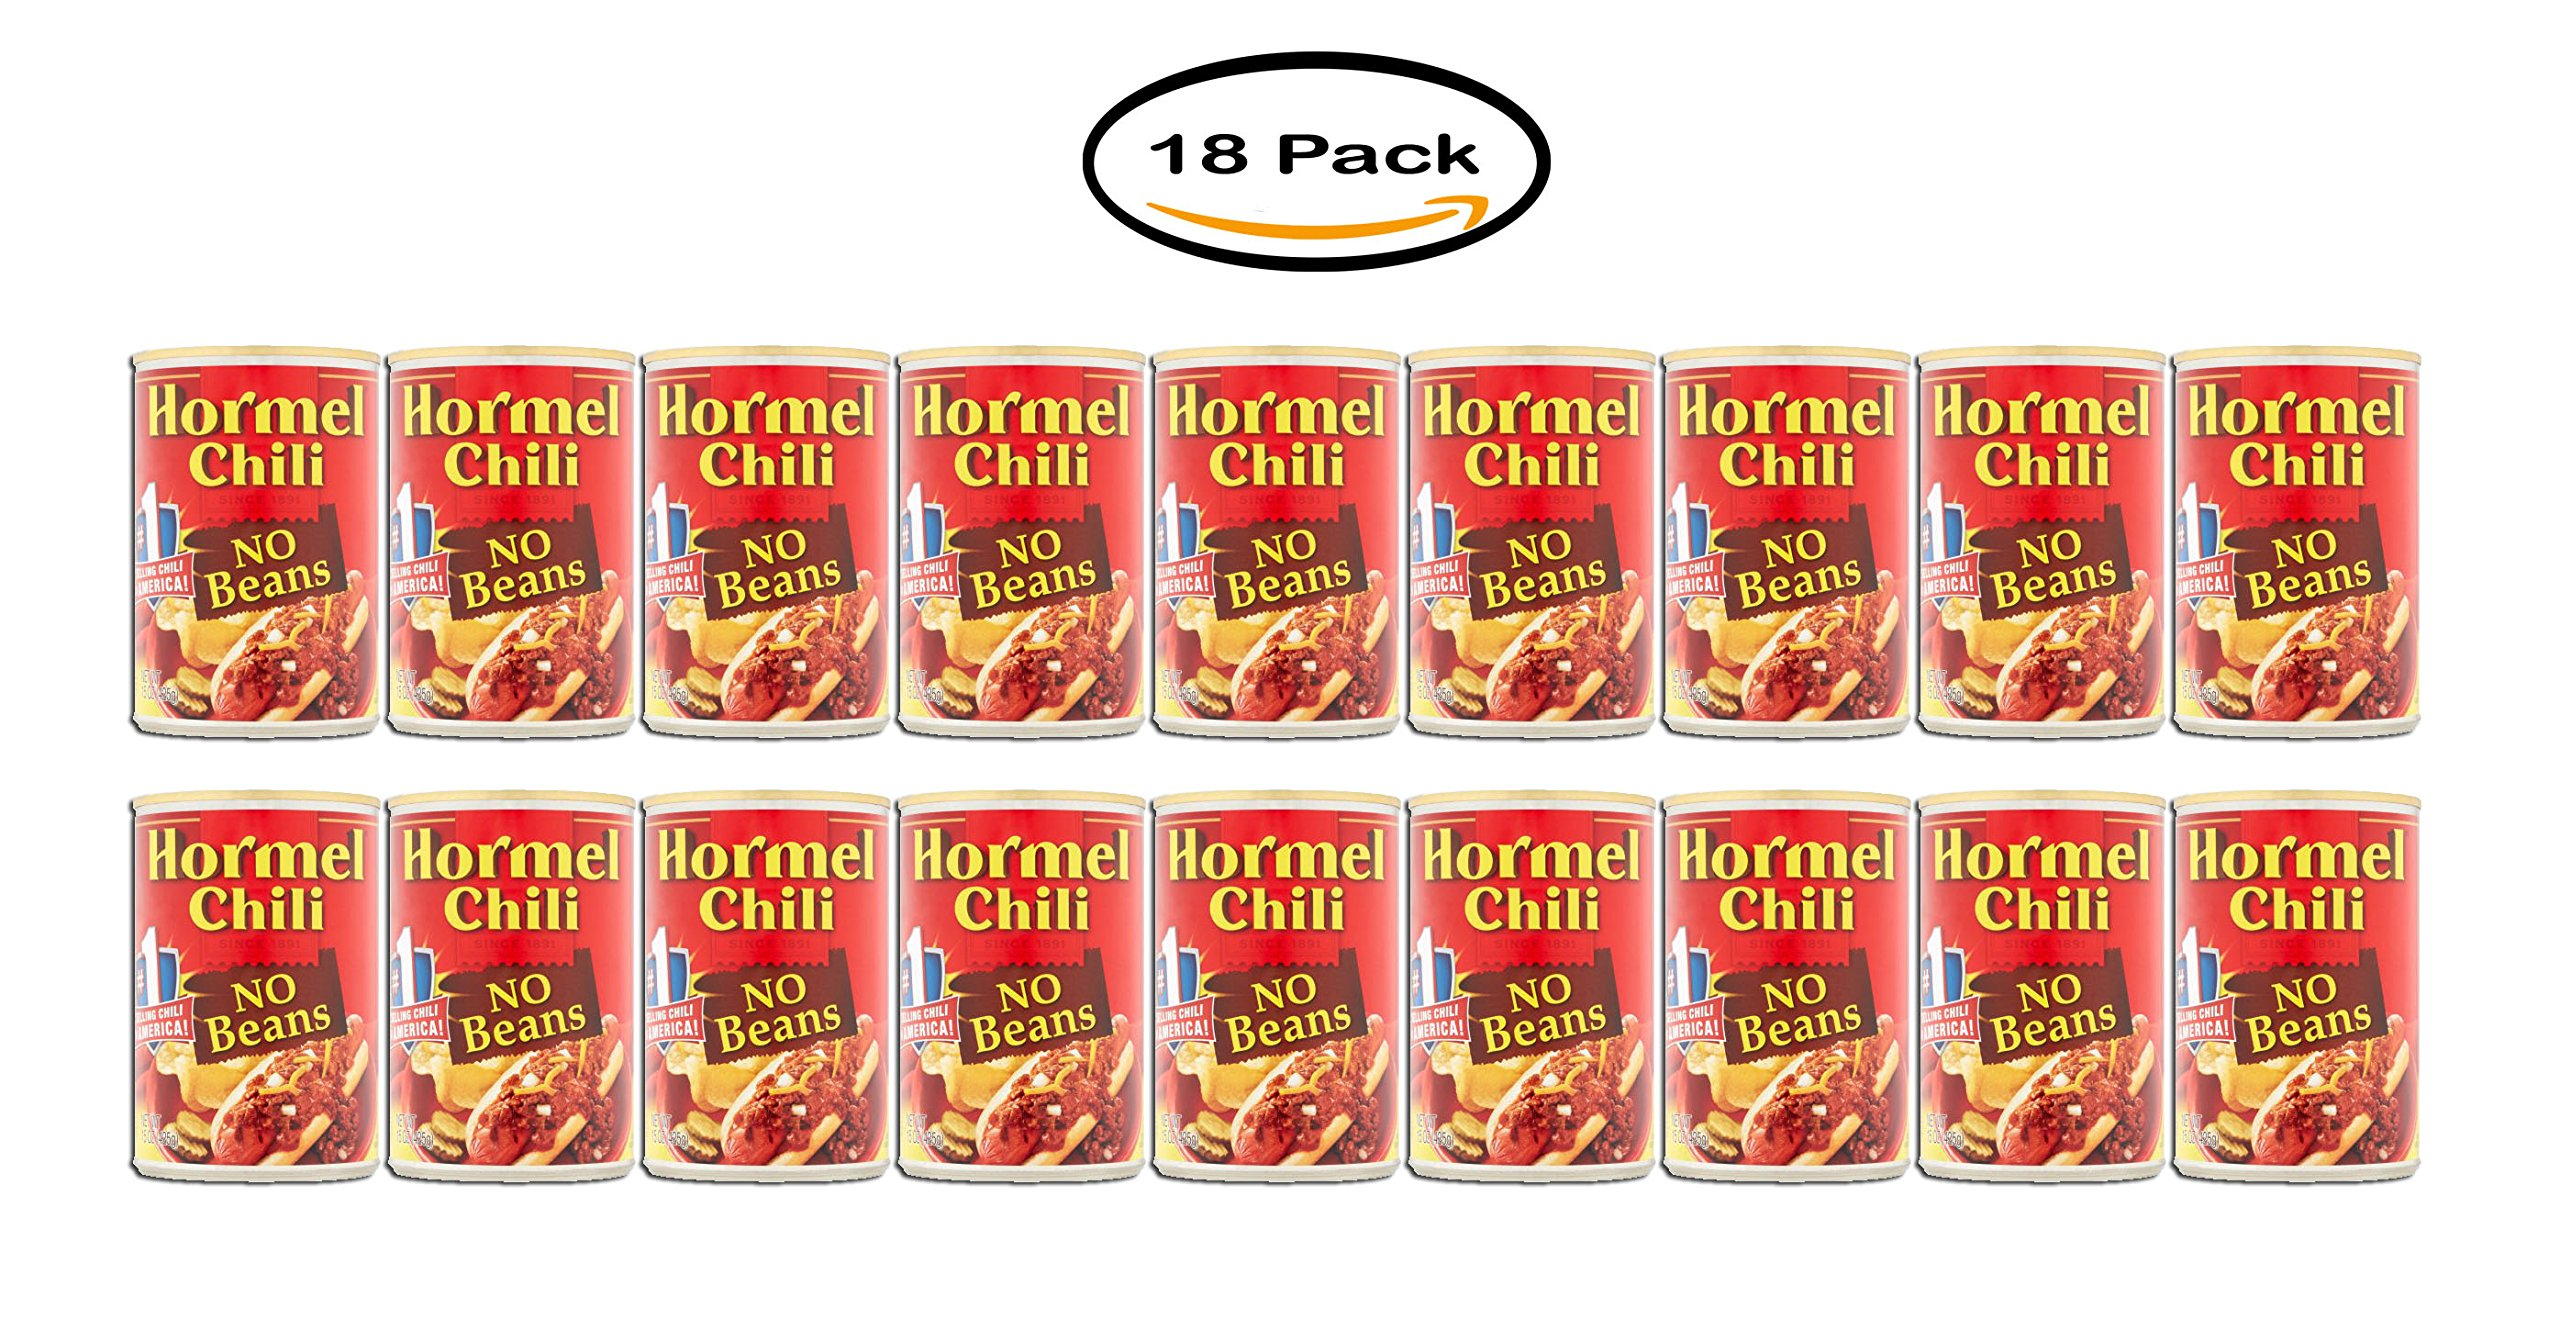 Pack of 18 - Hormel No Beans Chili, 15 oz by Hormel